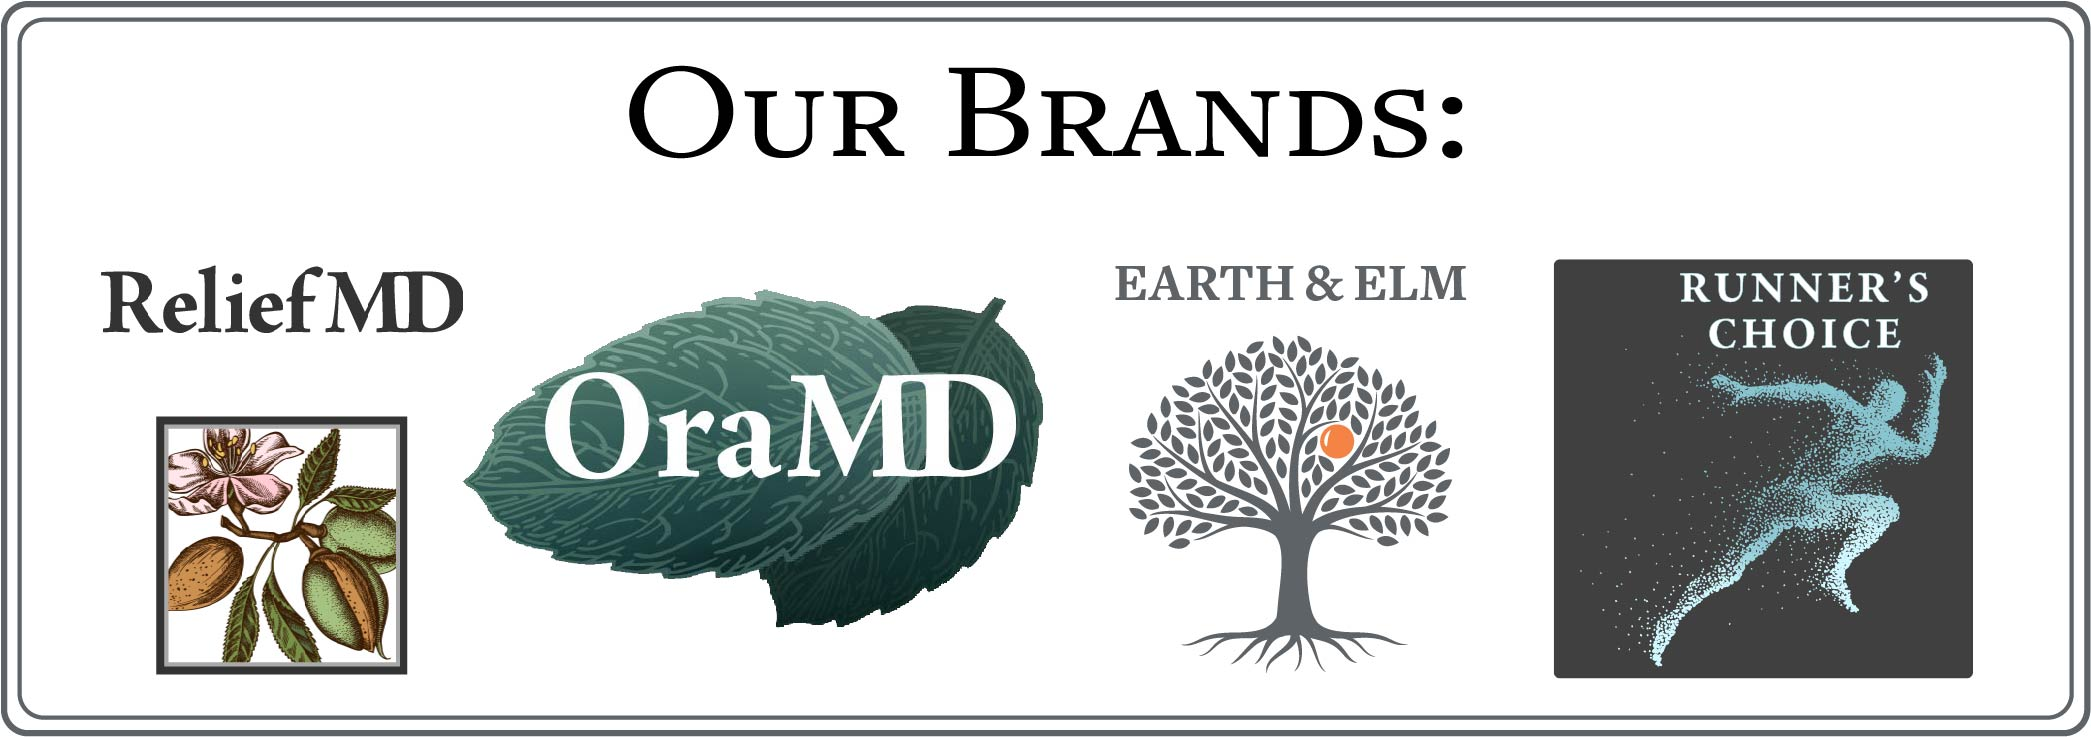 Trusted Health Products - Pure, All-Natural Health Products Brands